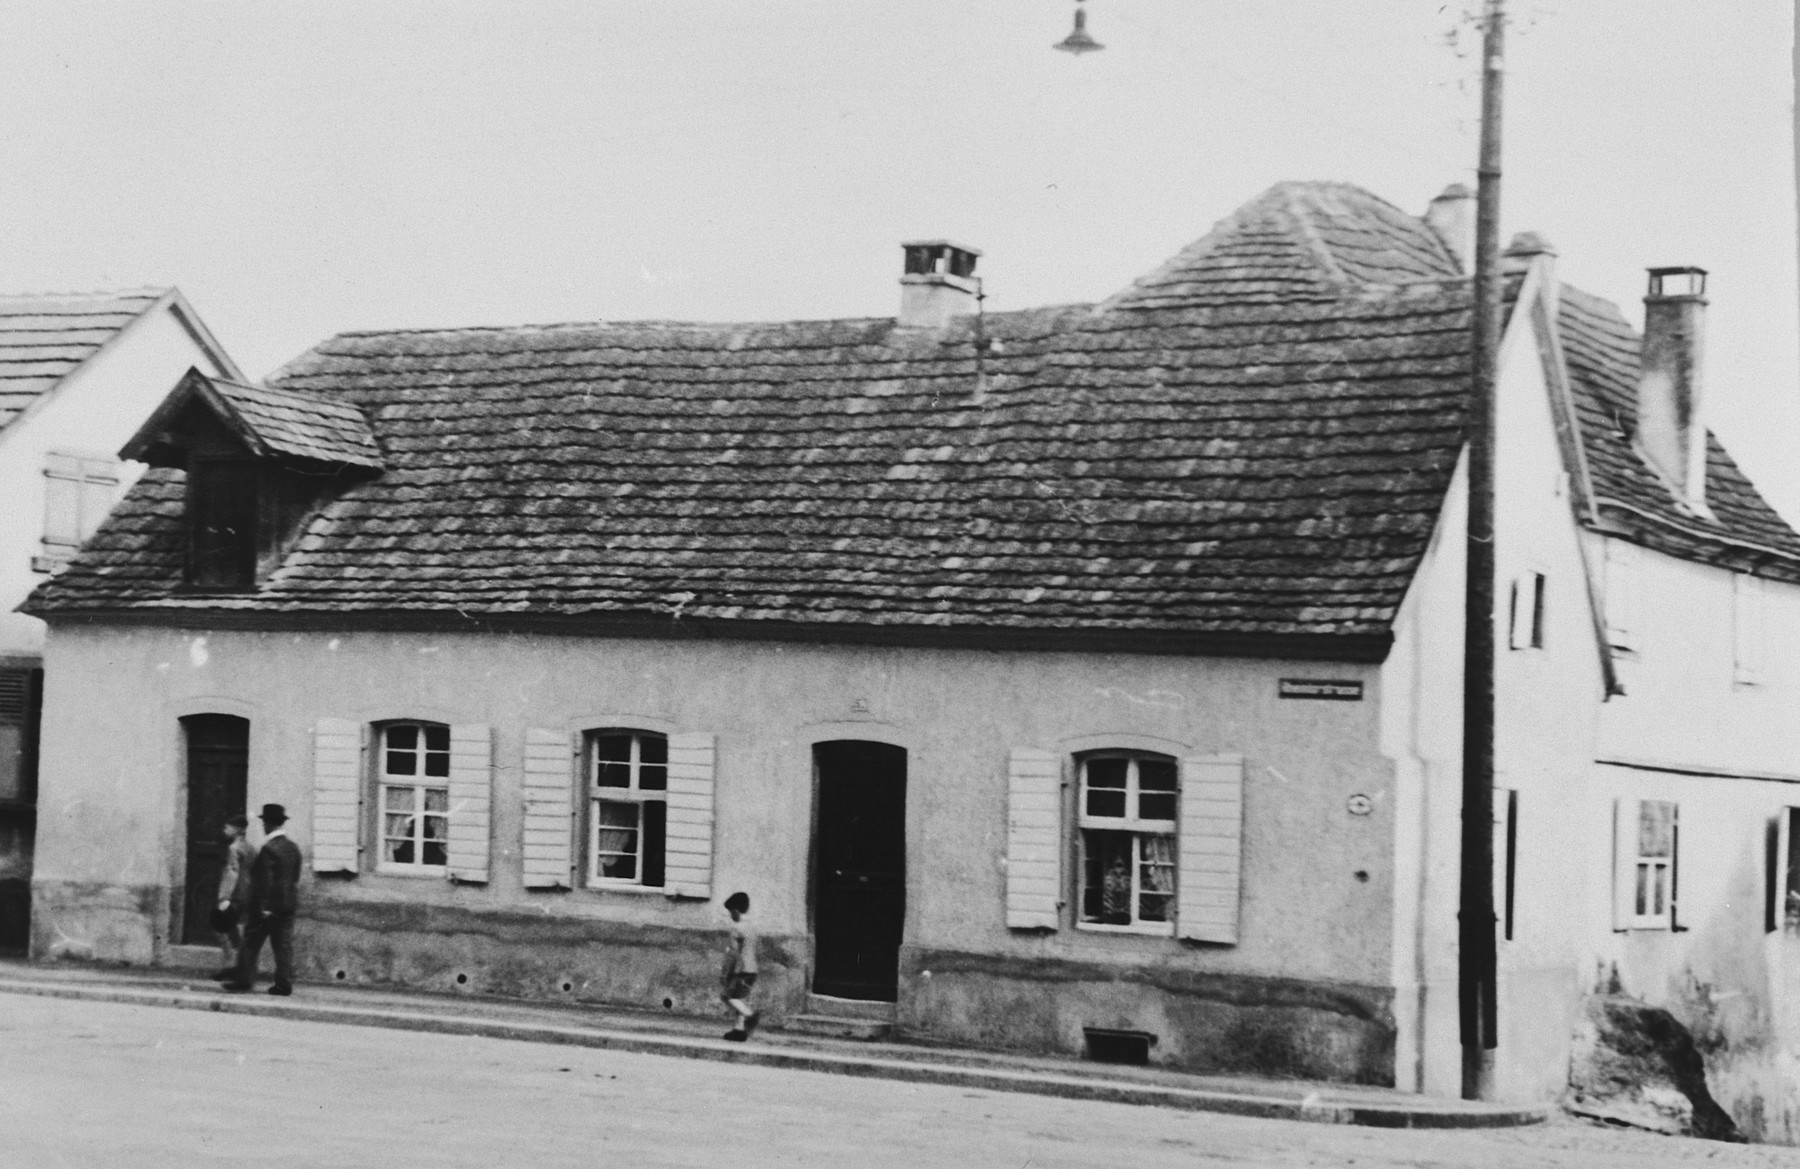 Exterior view of the home of Raphael Bähr (the father of Hermann and Julius) on Judengasse in Breisach.    This house was one of five homes destroyed during the bombing of the town at the end of the war.  Most of the other Jewish homes were not destroyed.  This is part of series of photographs taken of the Breisach Jewish community 1937.  In October 1940 the entire community was deported to the Gurs internment camp in southern France.